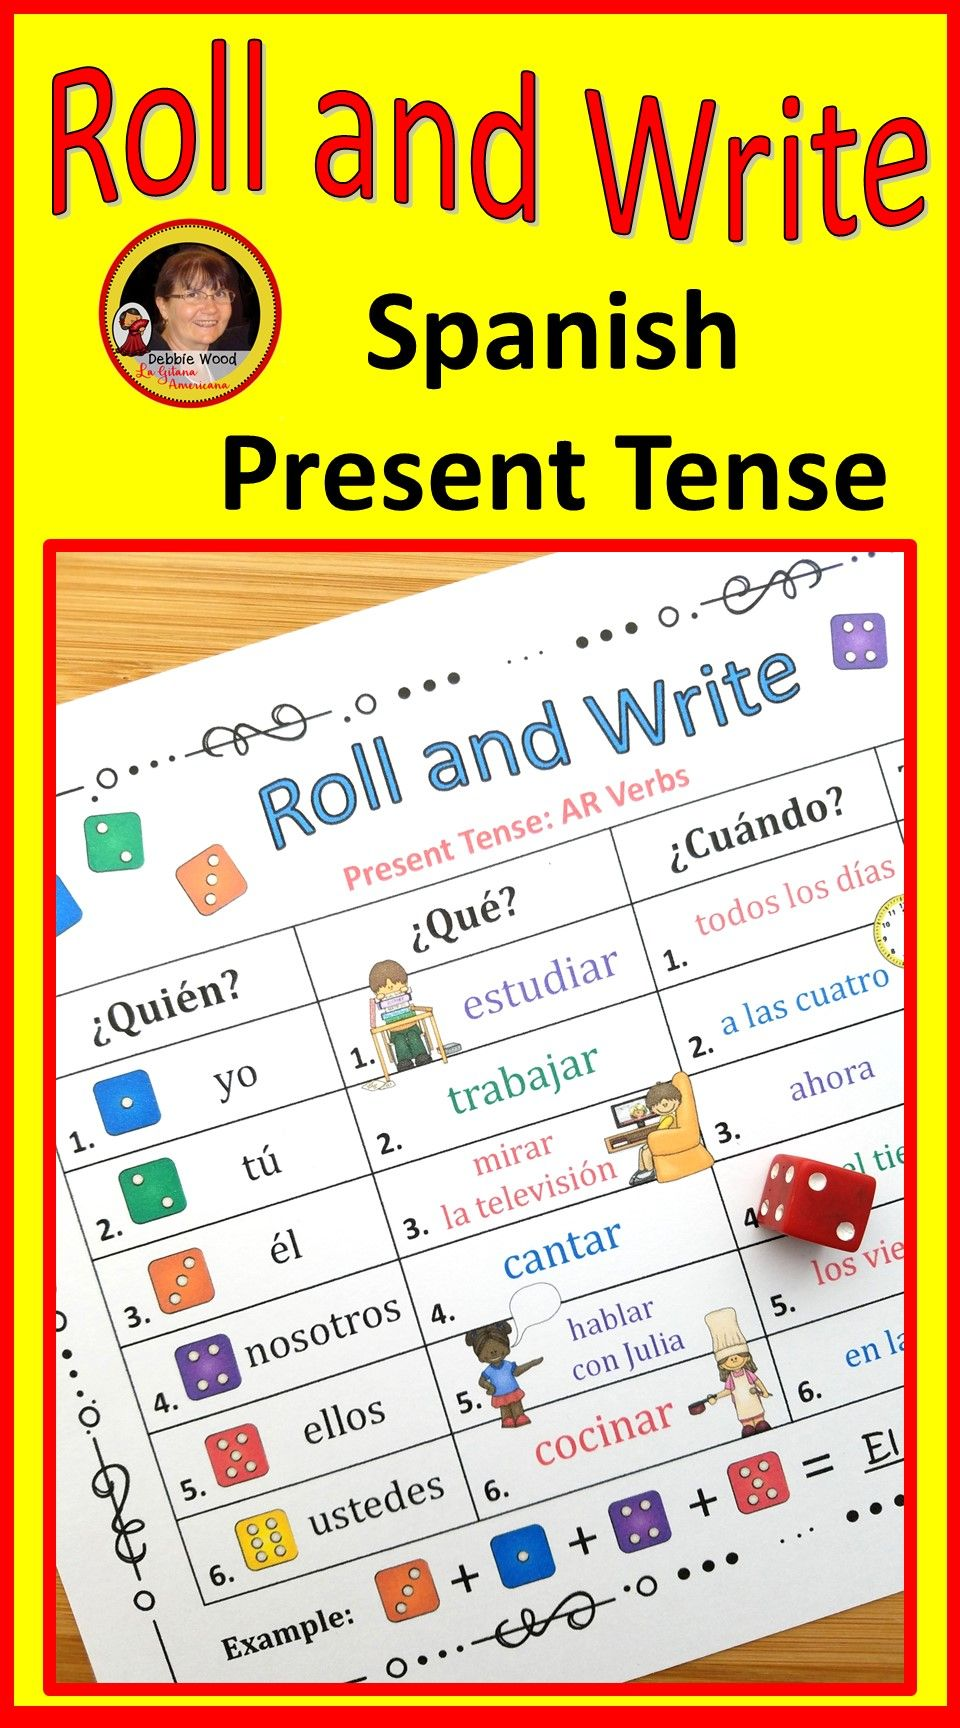 Spanish Present Tense Review Activities Roll and Write | Spanish ...